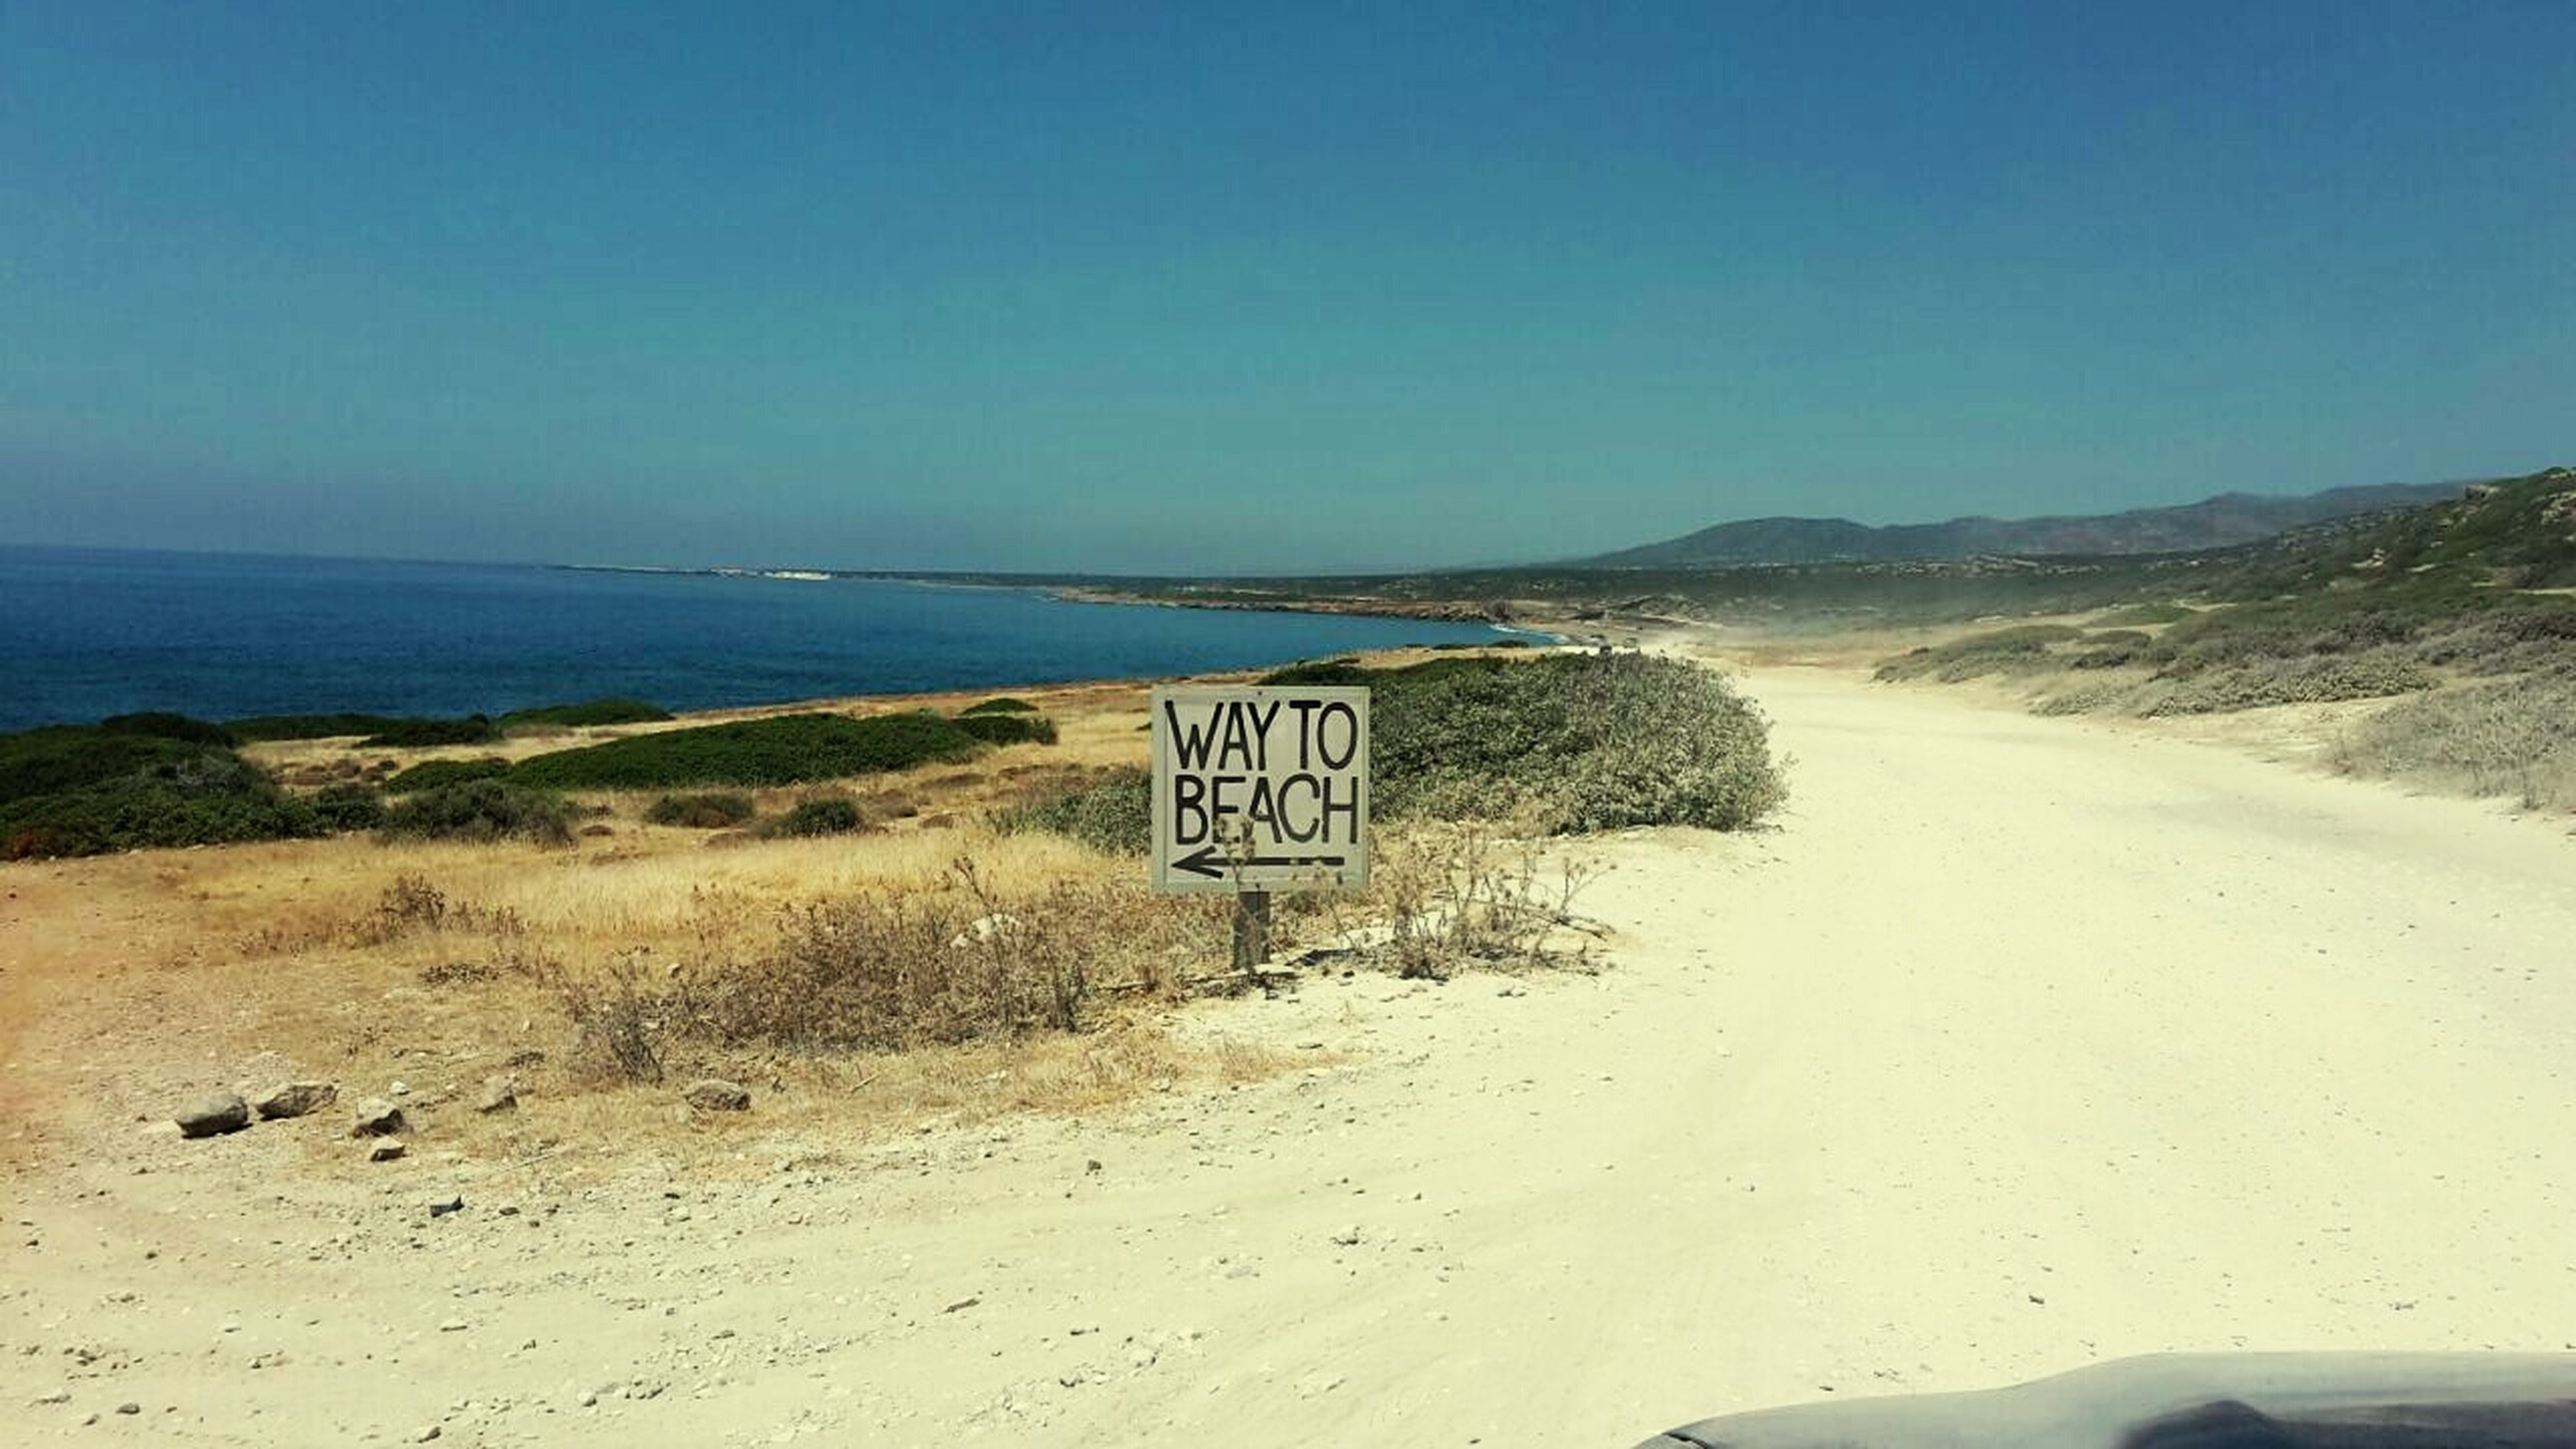 clear sky, text, western script, beach, tranquil scene, tranquility, sand, sea, communication, copy space, nature, scenics, information sign, blue, sign, road, water, guidance, sky, beauty in nature